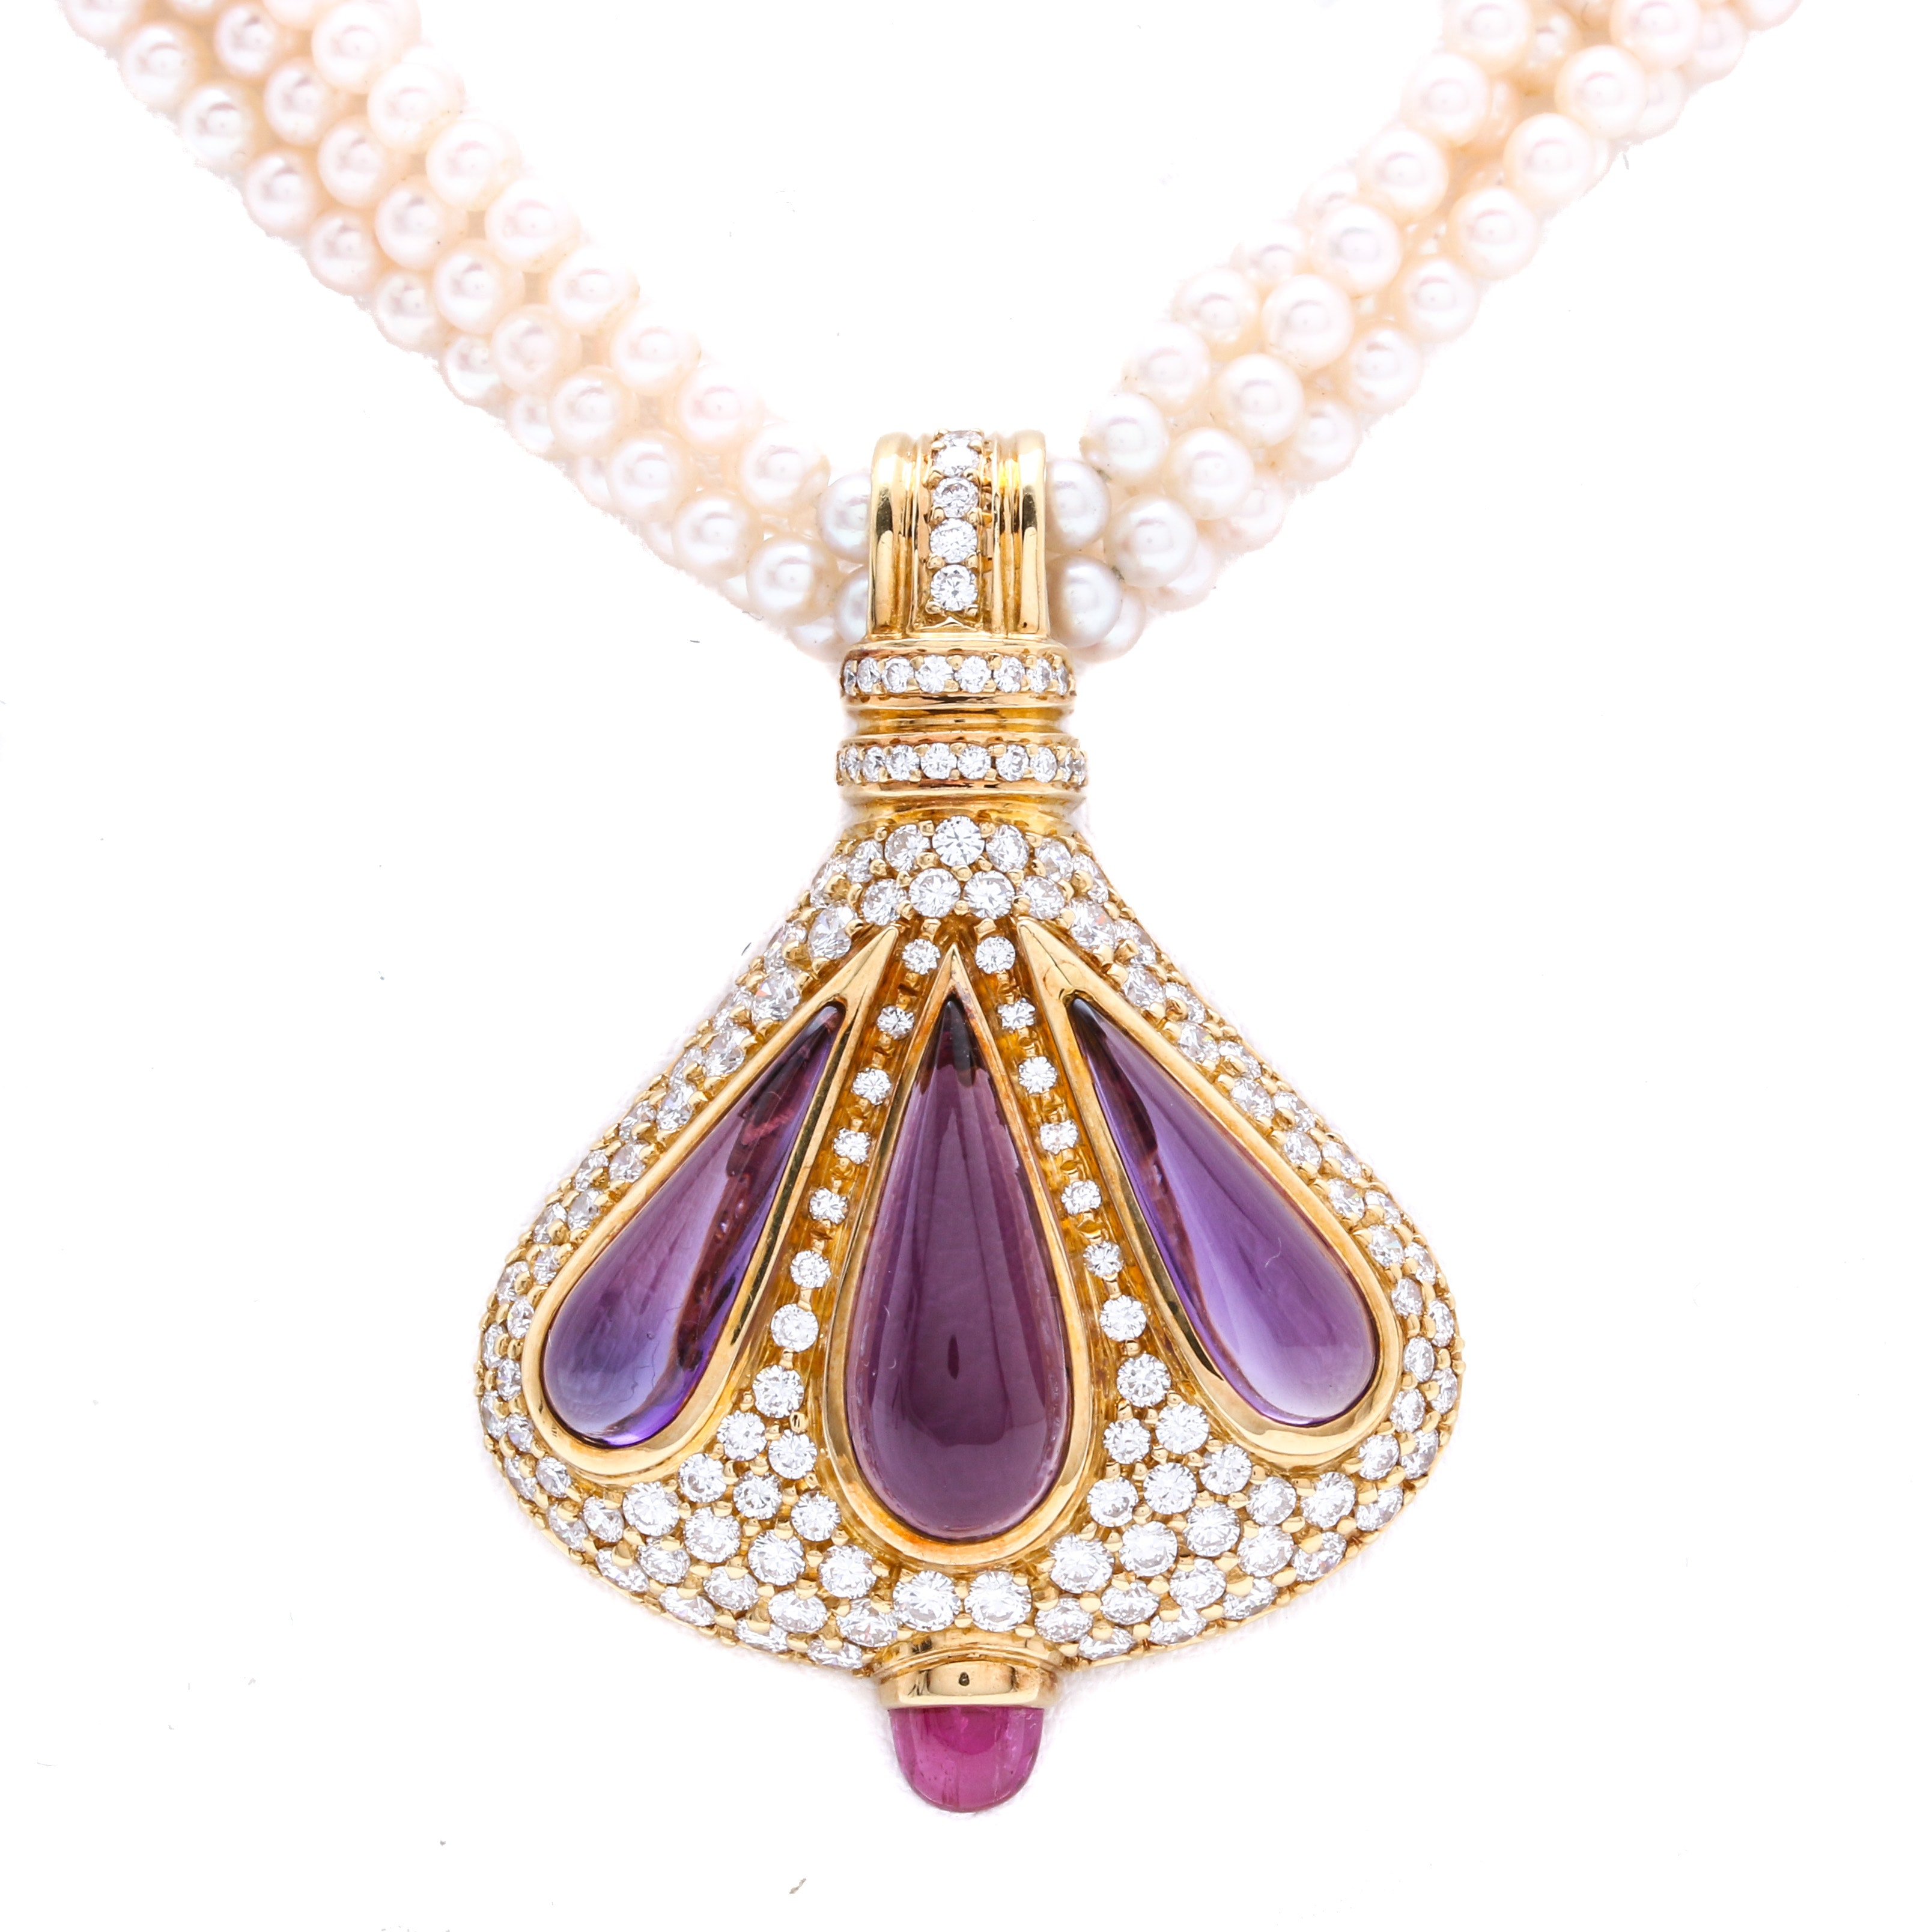 18K Yellow Gold 3.00 CTW Diamond, Amethyst, Pink Sapphire and Pearl Necklace